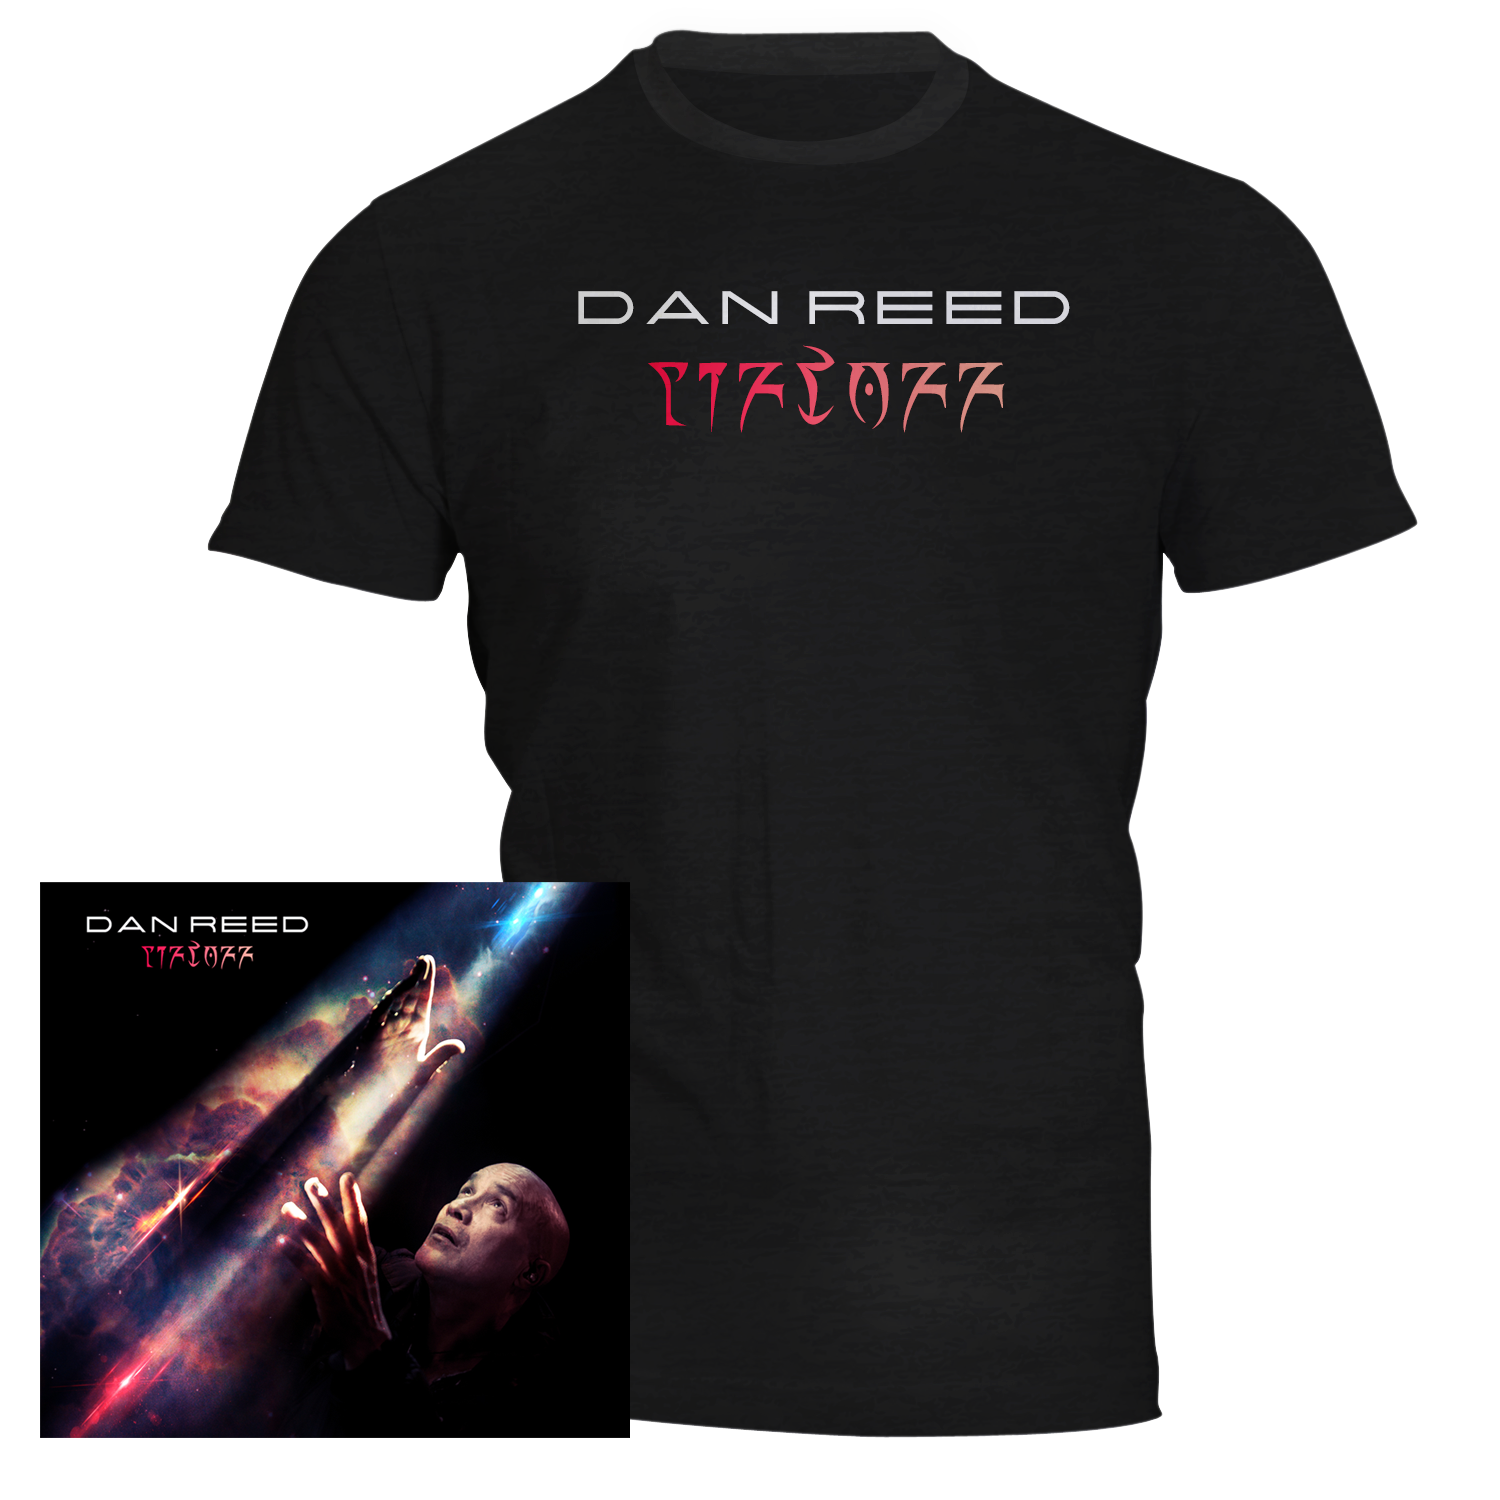 Dan Reed Liftoff Album Download T Shirt Tm Stores